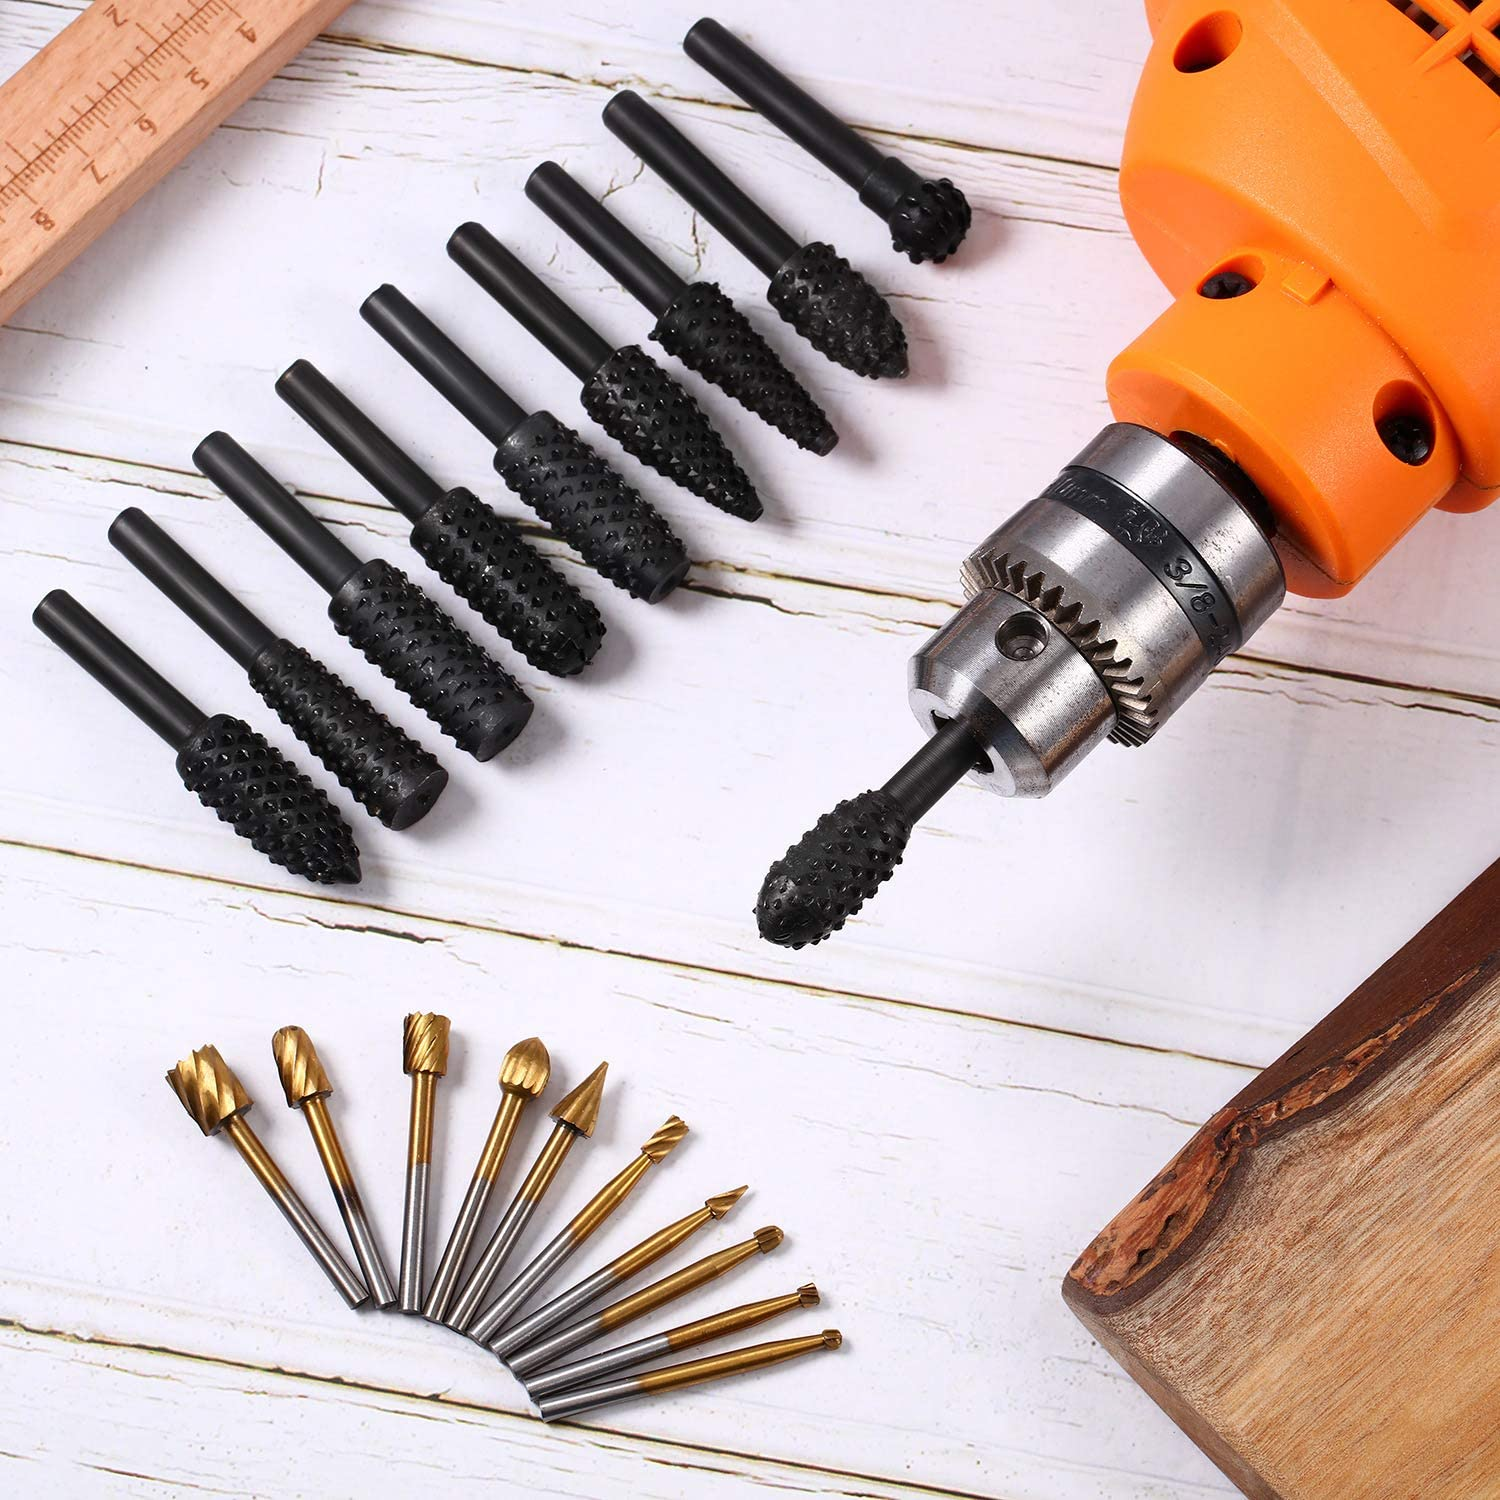 Black and Gold 10 Pieces Router Bits Woodworking File Rasp Drill Bit with 1//8 Inch Shank and 10 Pieces Router Burrs Embossed Grinding Head with 1//4 Inch Shank for DIY Woodworking Carving Drilling